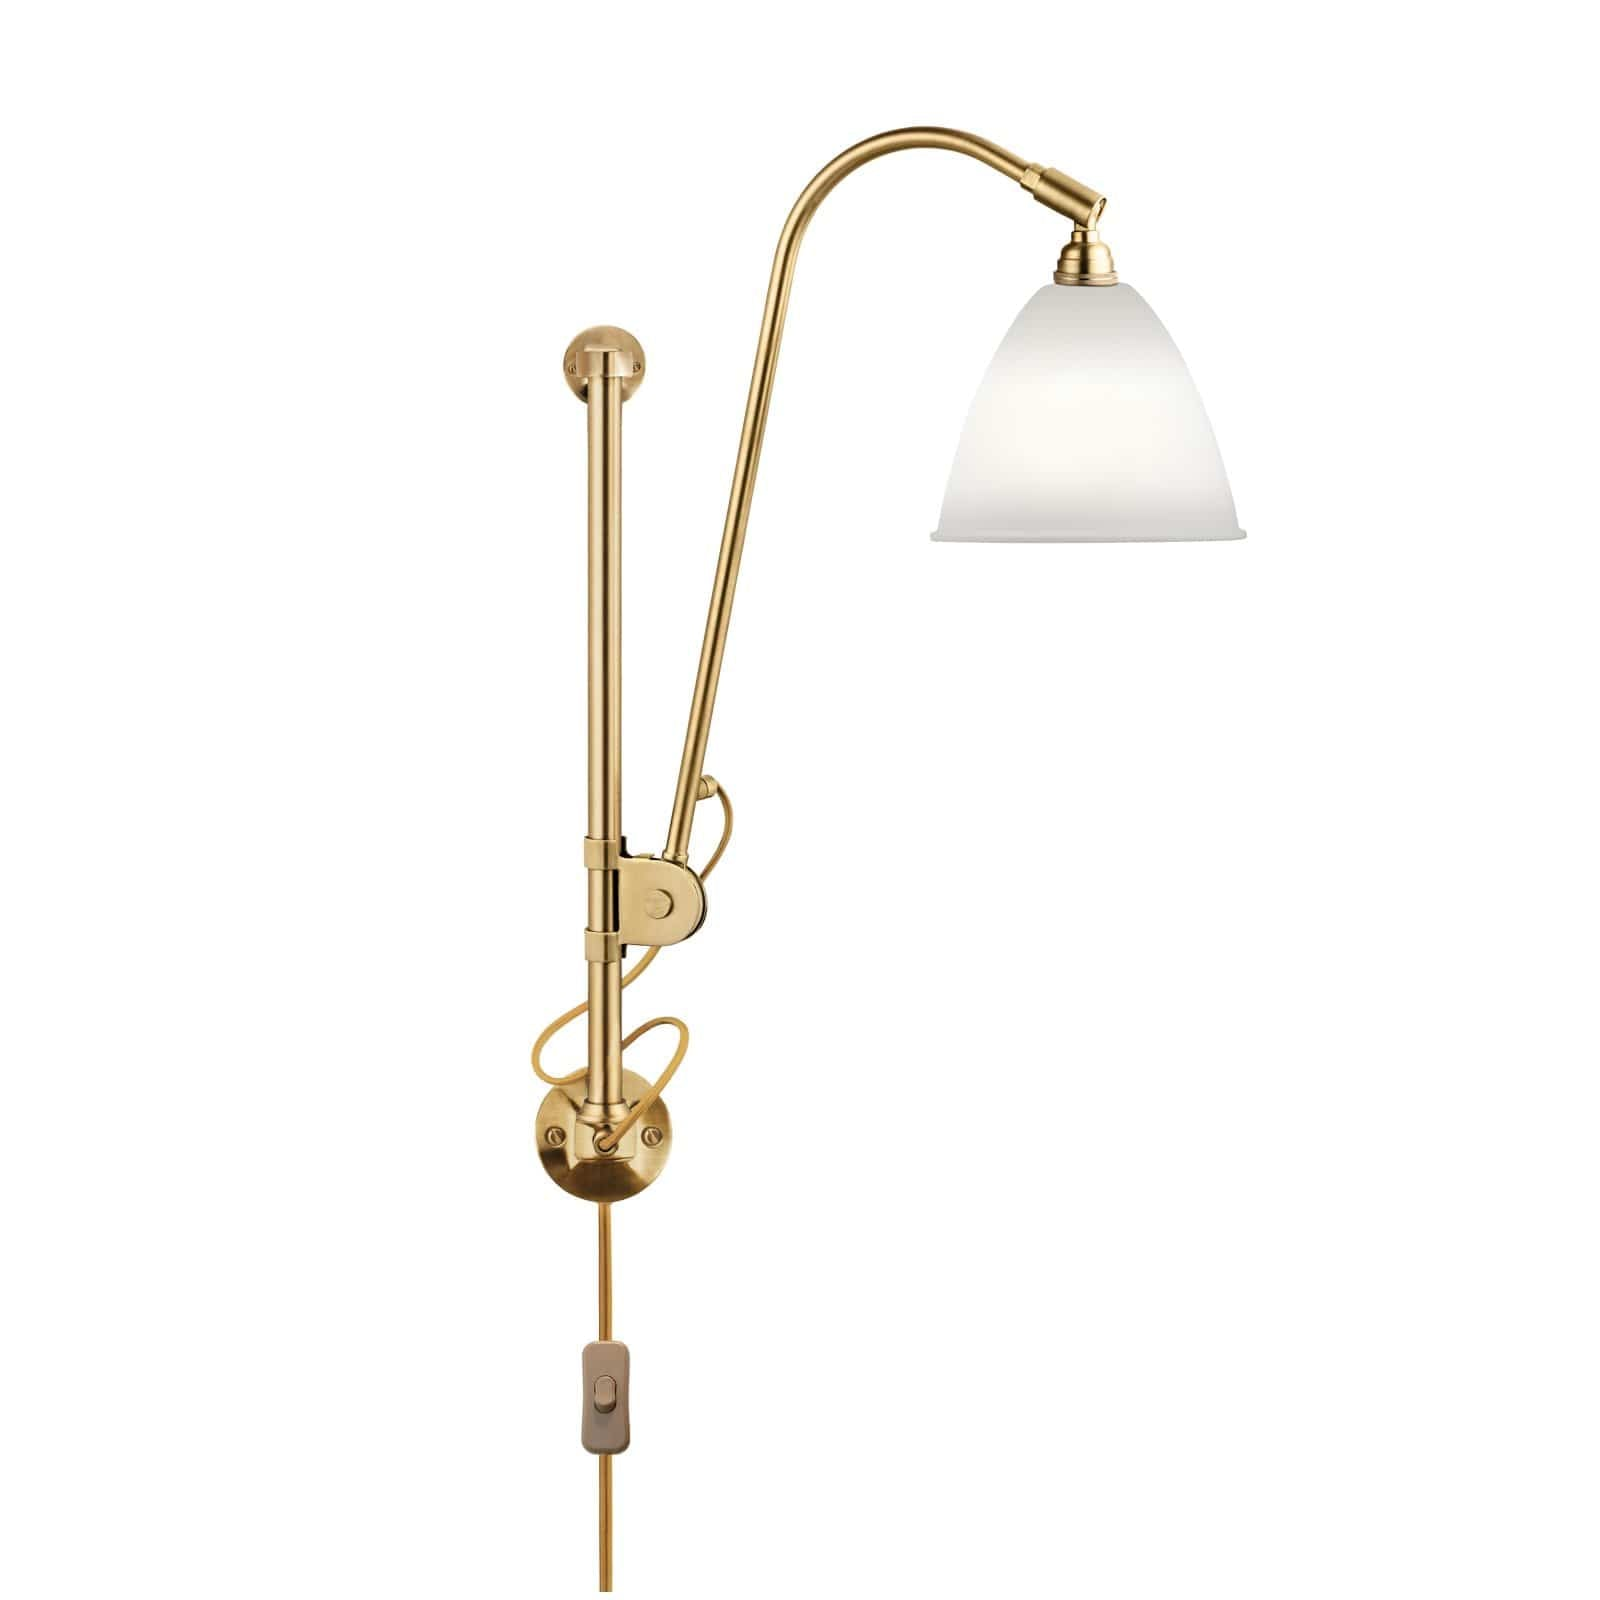 Gubi Lighting Brass / Bone China BL5 Wall Lamp